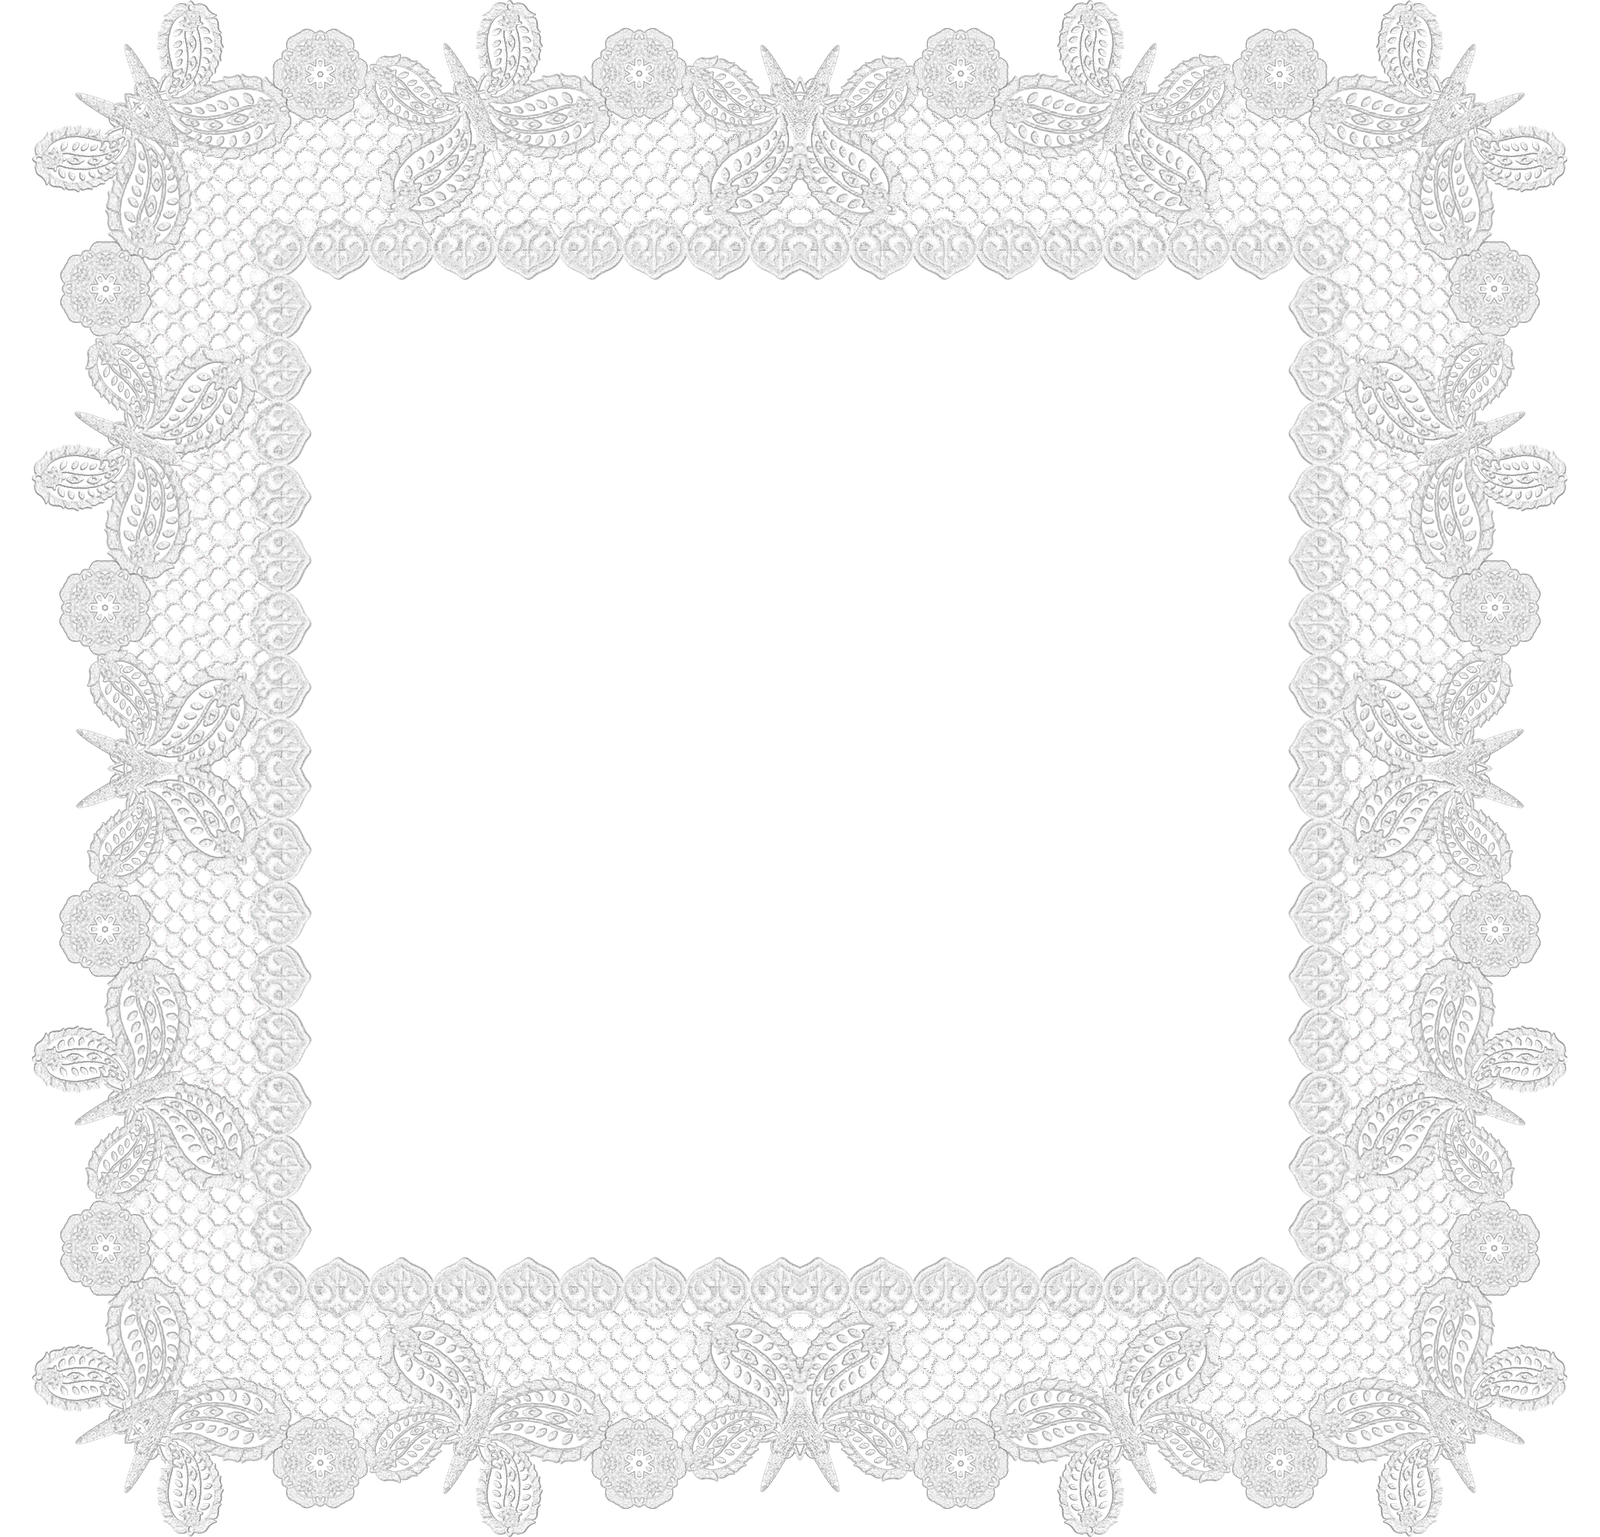 High-quality Lace Border Cliparts For Free! image #37003